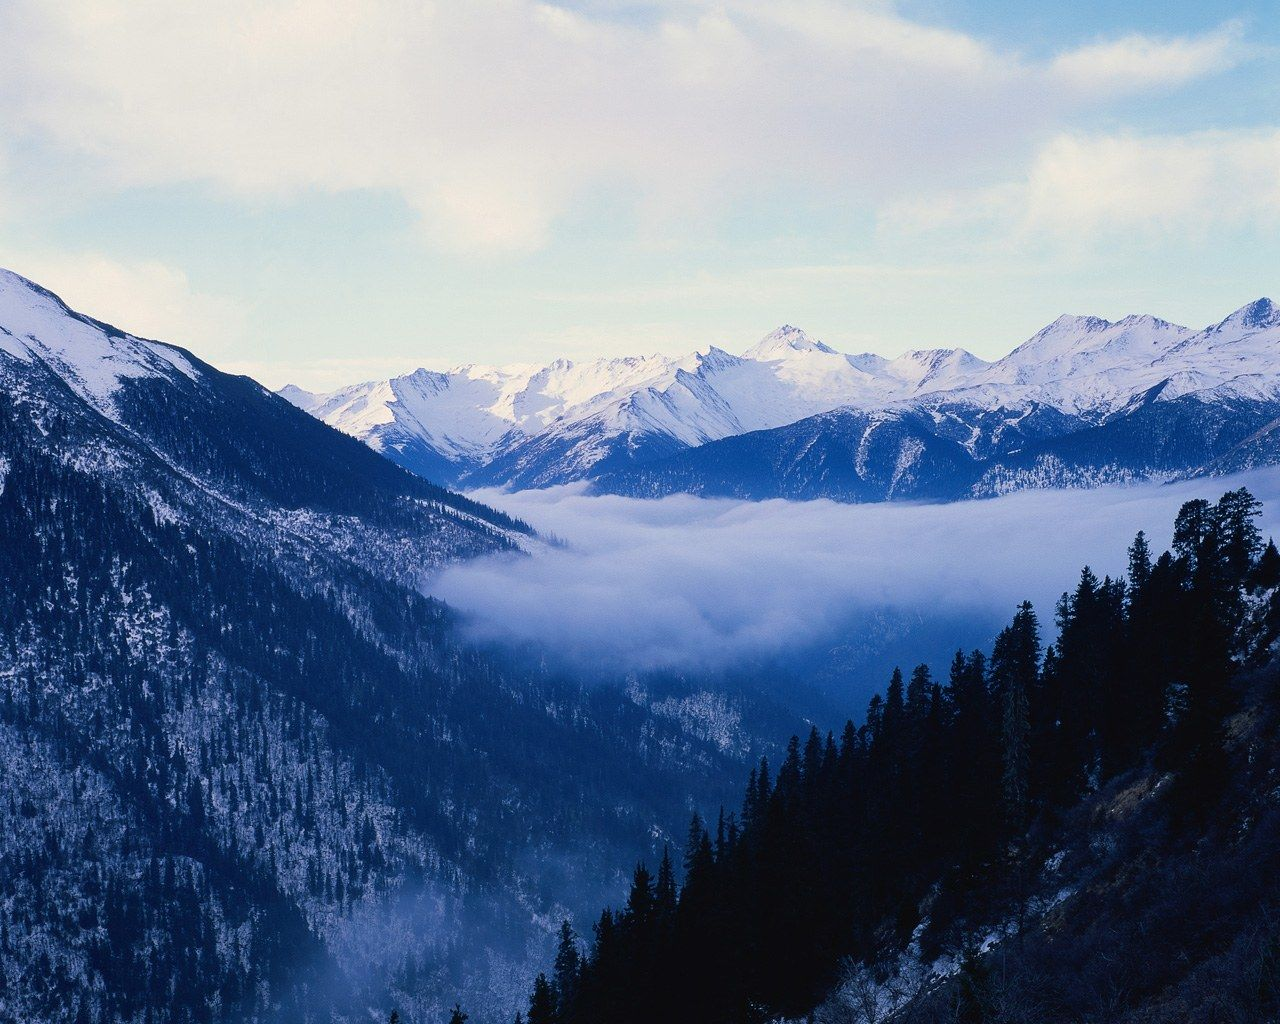 Download Wallpaper Mountain Winter - 238f14e11499564b213f7014dff08417  Perfect Image Reference_6911100.jpg